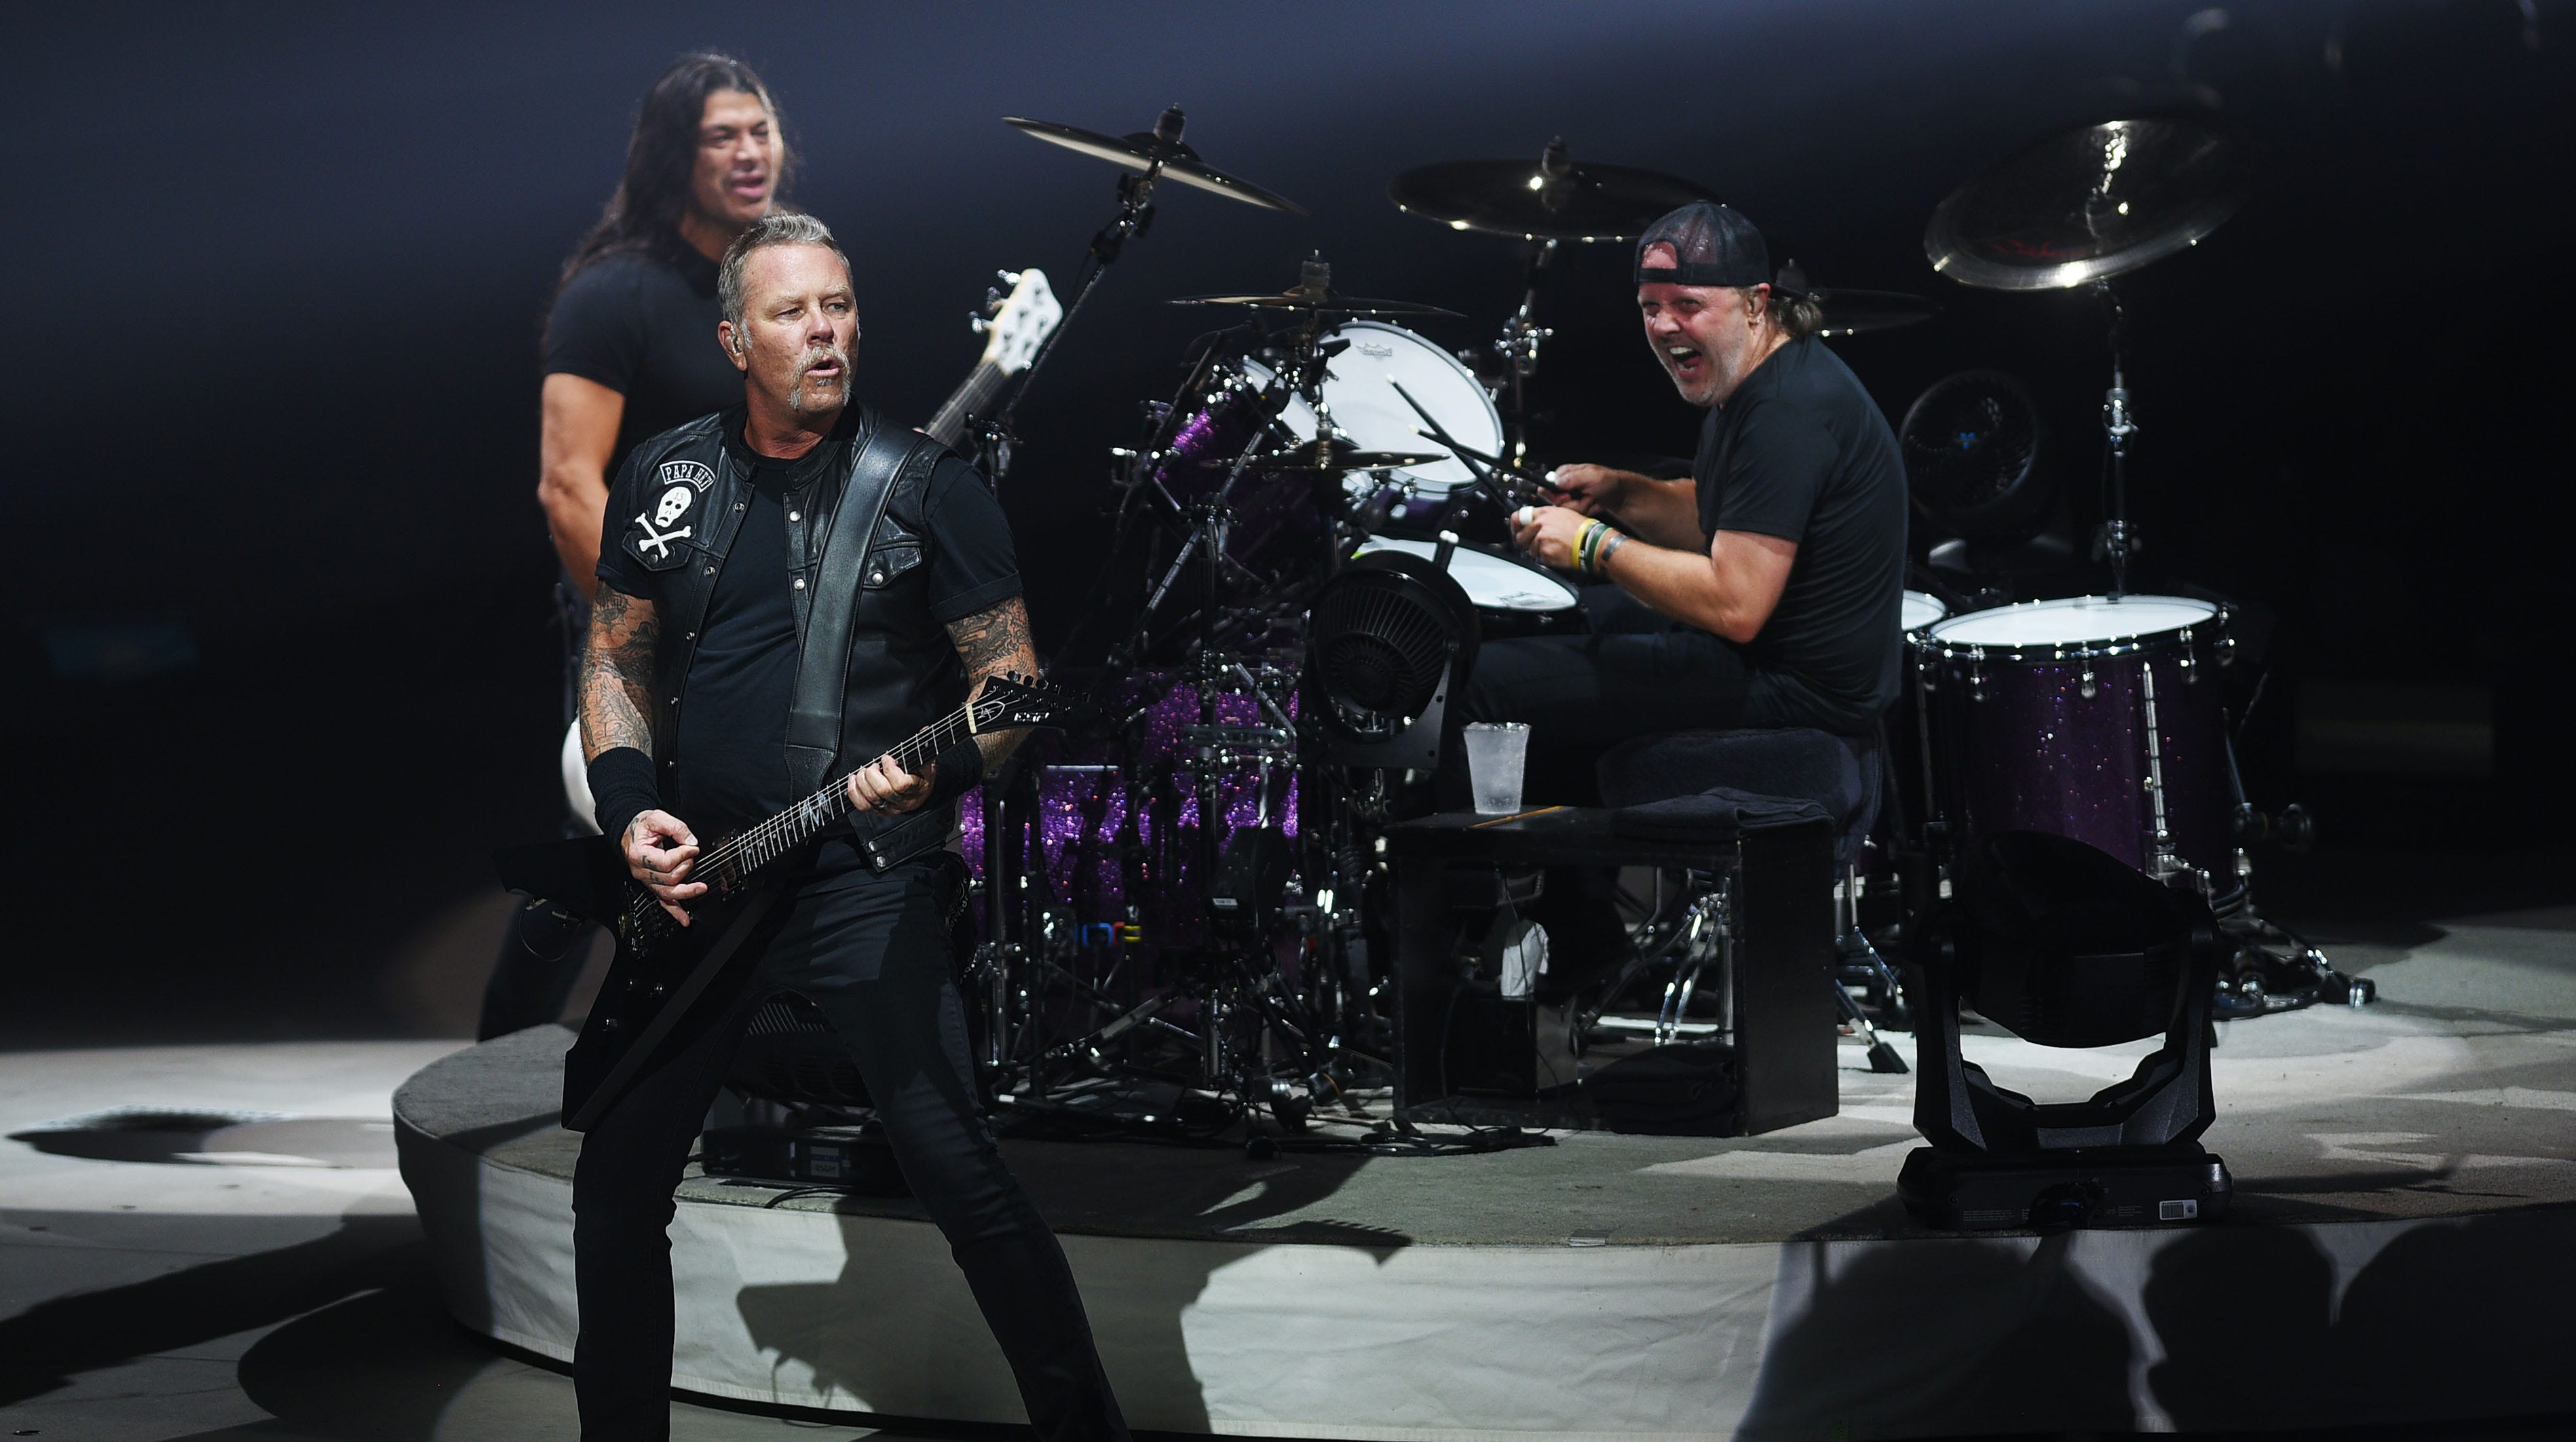 Metallica's James Hetfield, front, Robert Trujillo, back left, and Lars Ulrich, back right, perform Tuesday, Sept. 11, at the Denny Sanford Premier Center in Sioux Falls.